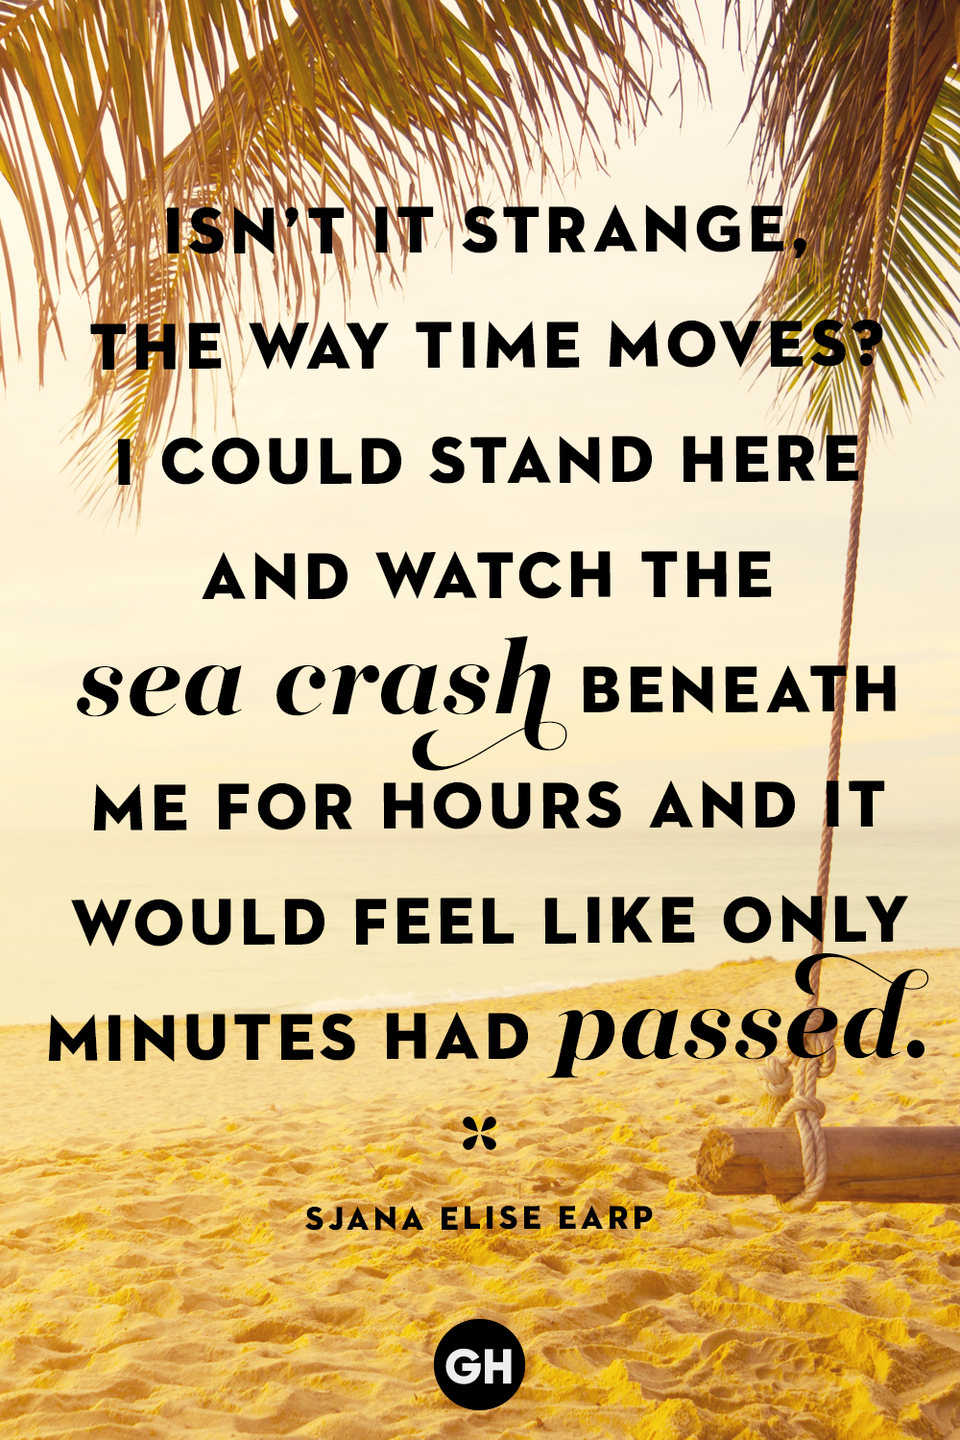 """<p>""""Isn't it strange, the way time moves? I could stand here and watch the sea crash beneath me for hours and it would feel like only minutes had passed.""""</p>"""